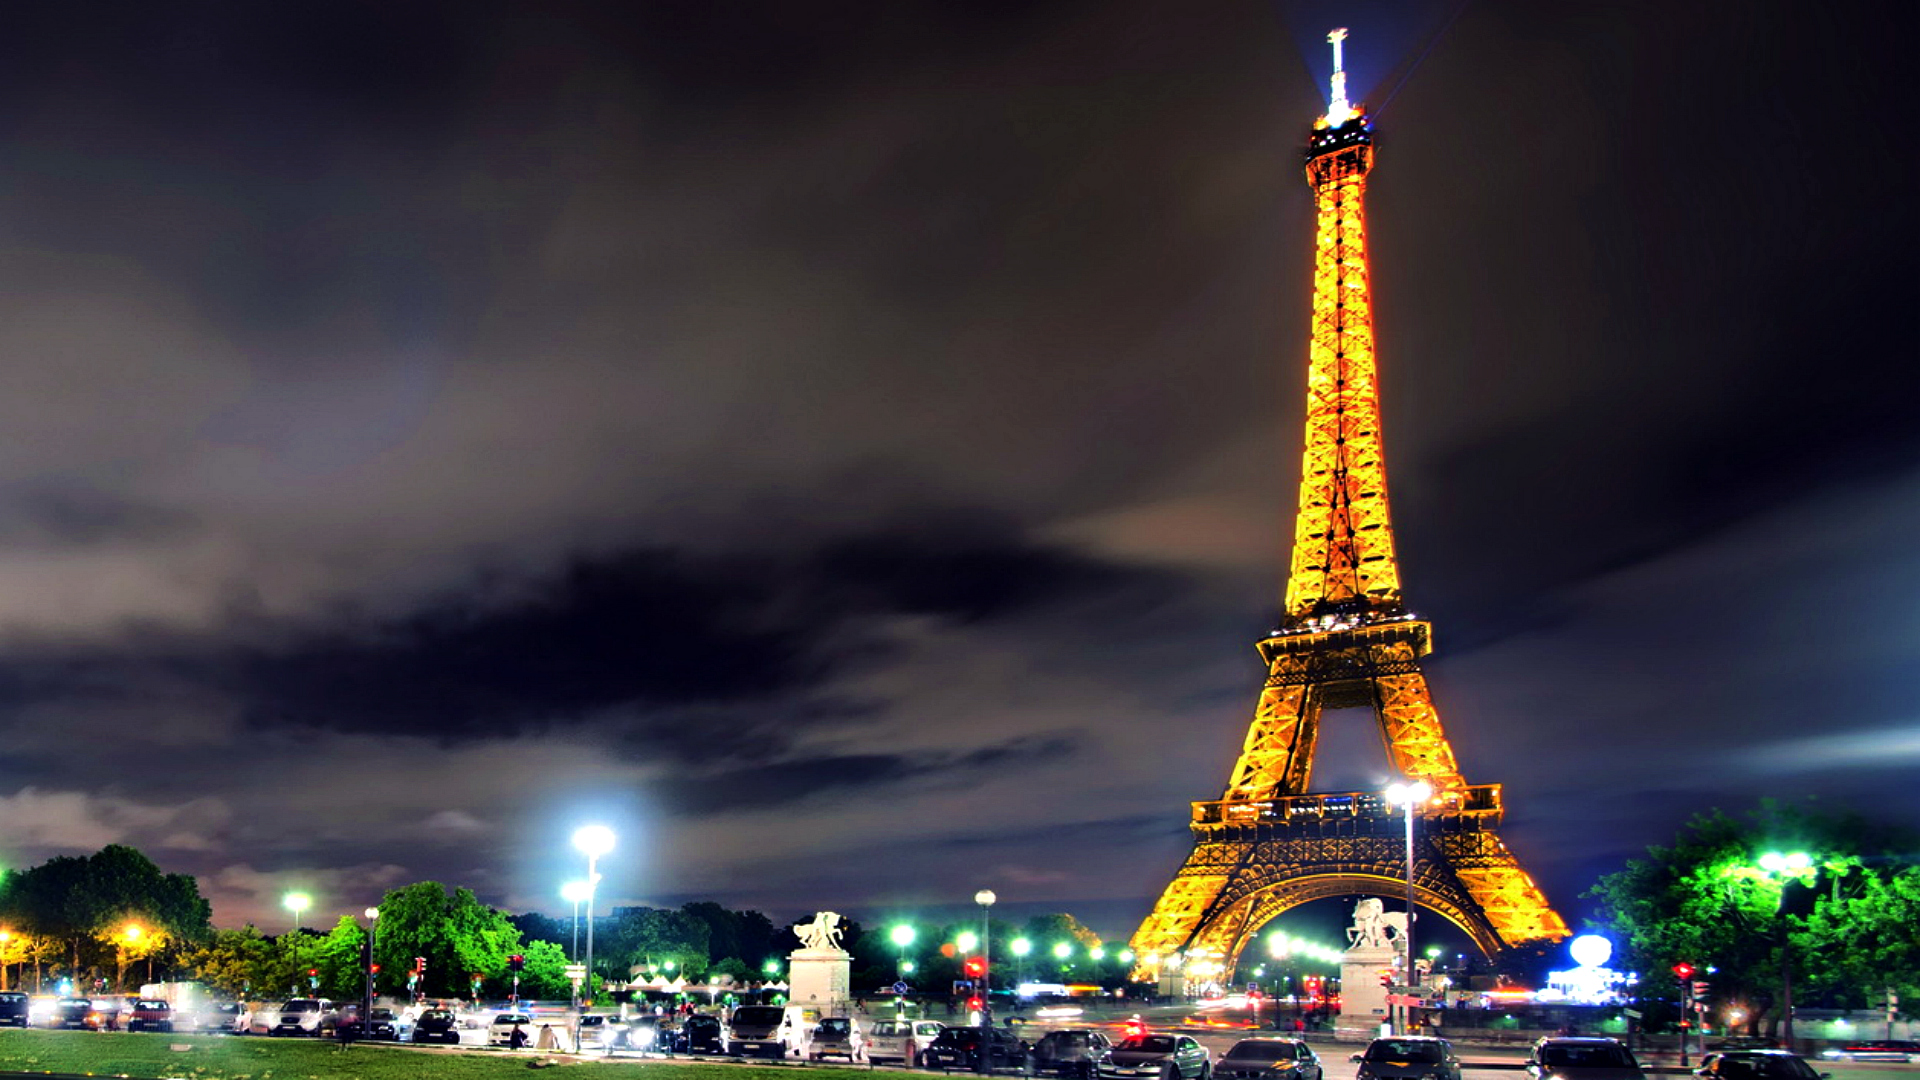 Hd Eiffel Tower Night Wallpaper 1920x1080